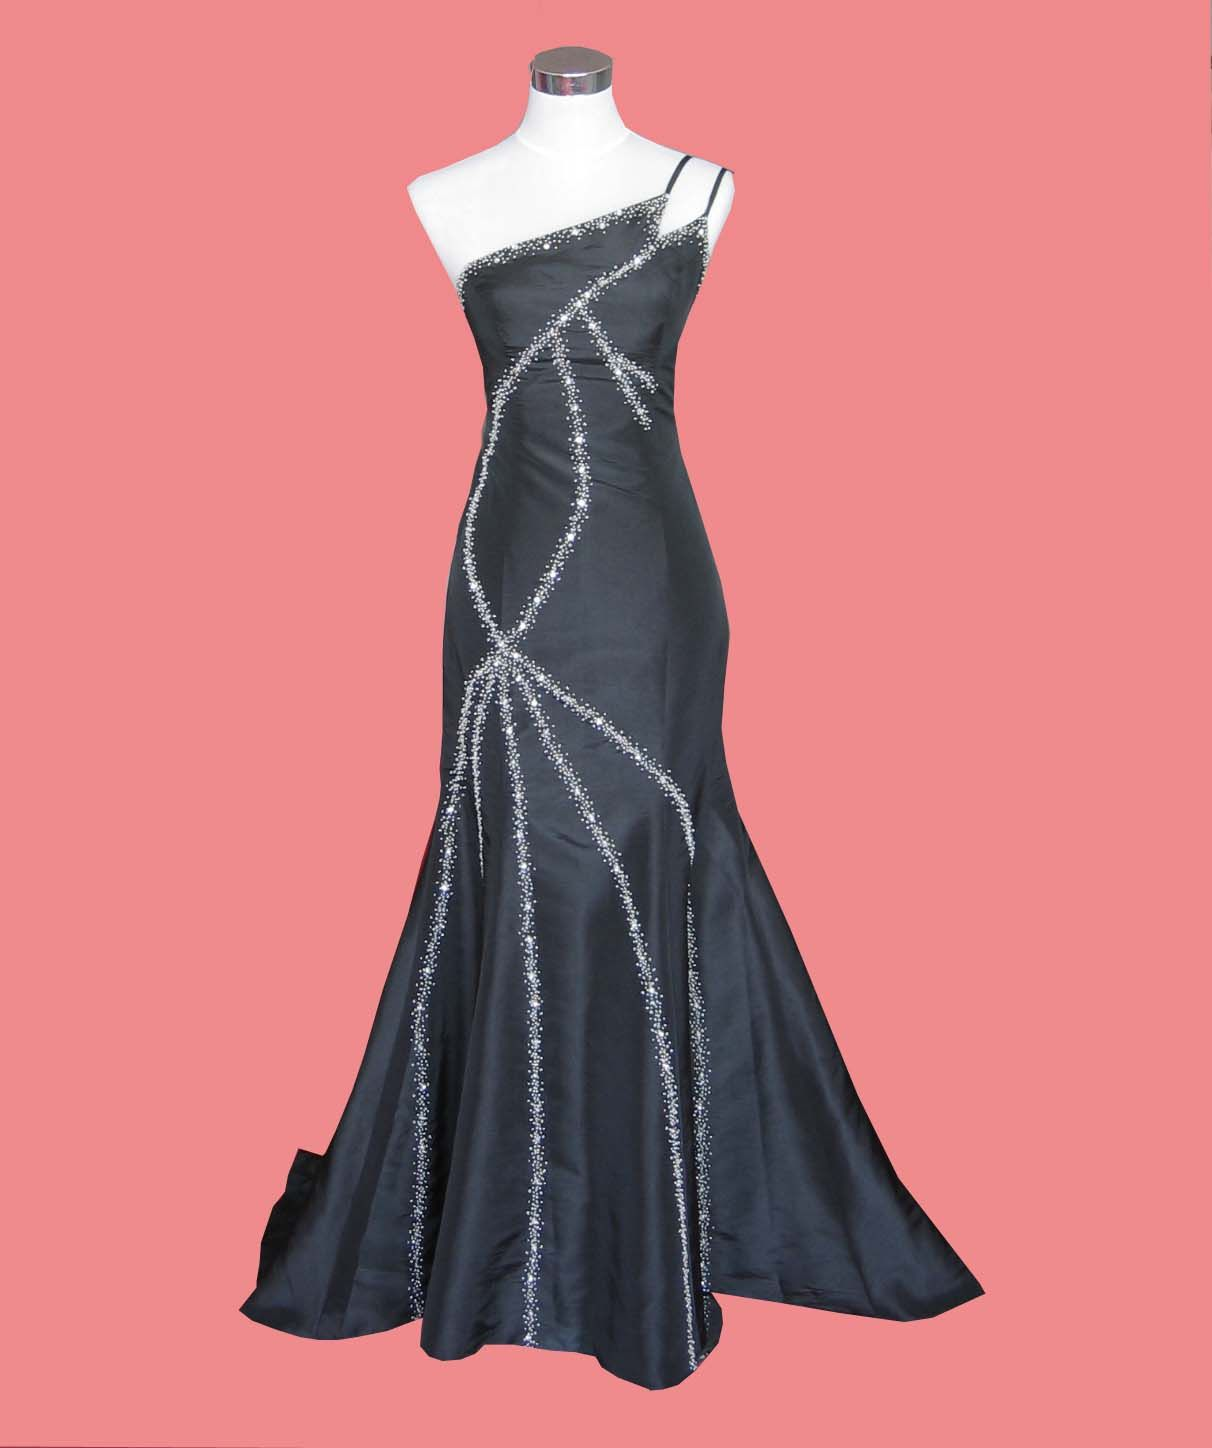 Dresses black strapless style evening dresses new trends fashion